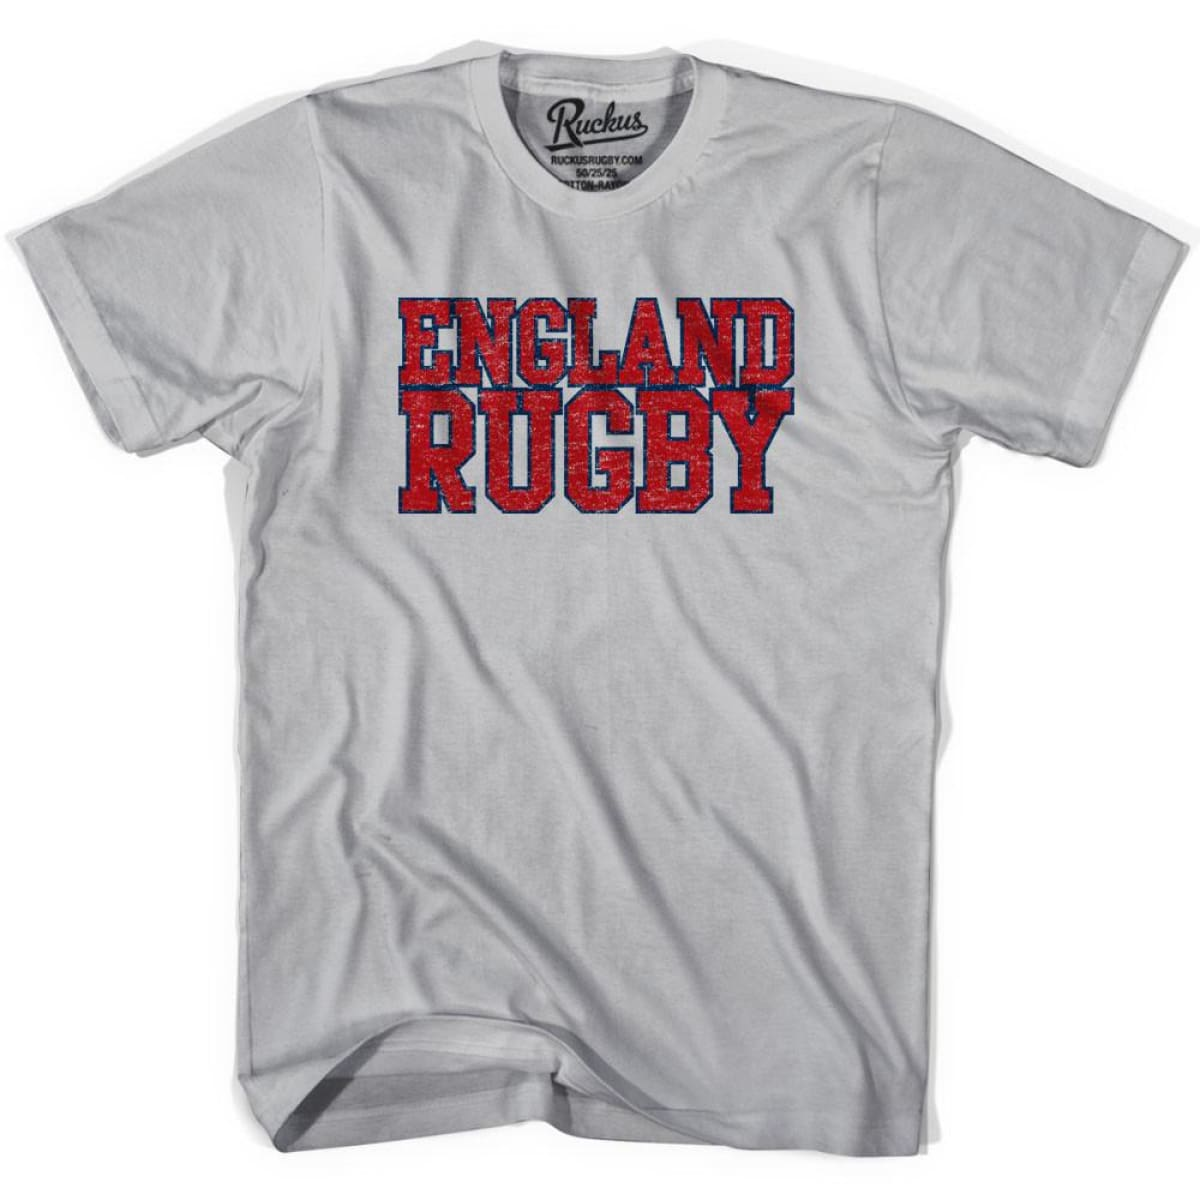 England Rugby Natons T-shirt - Cool Grey / Youth X-Small - Rugby T-shirt